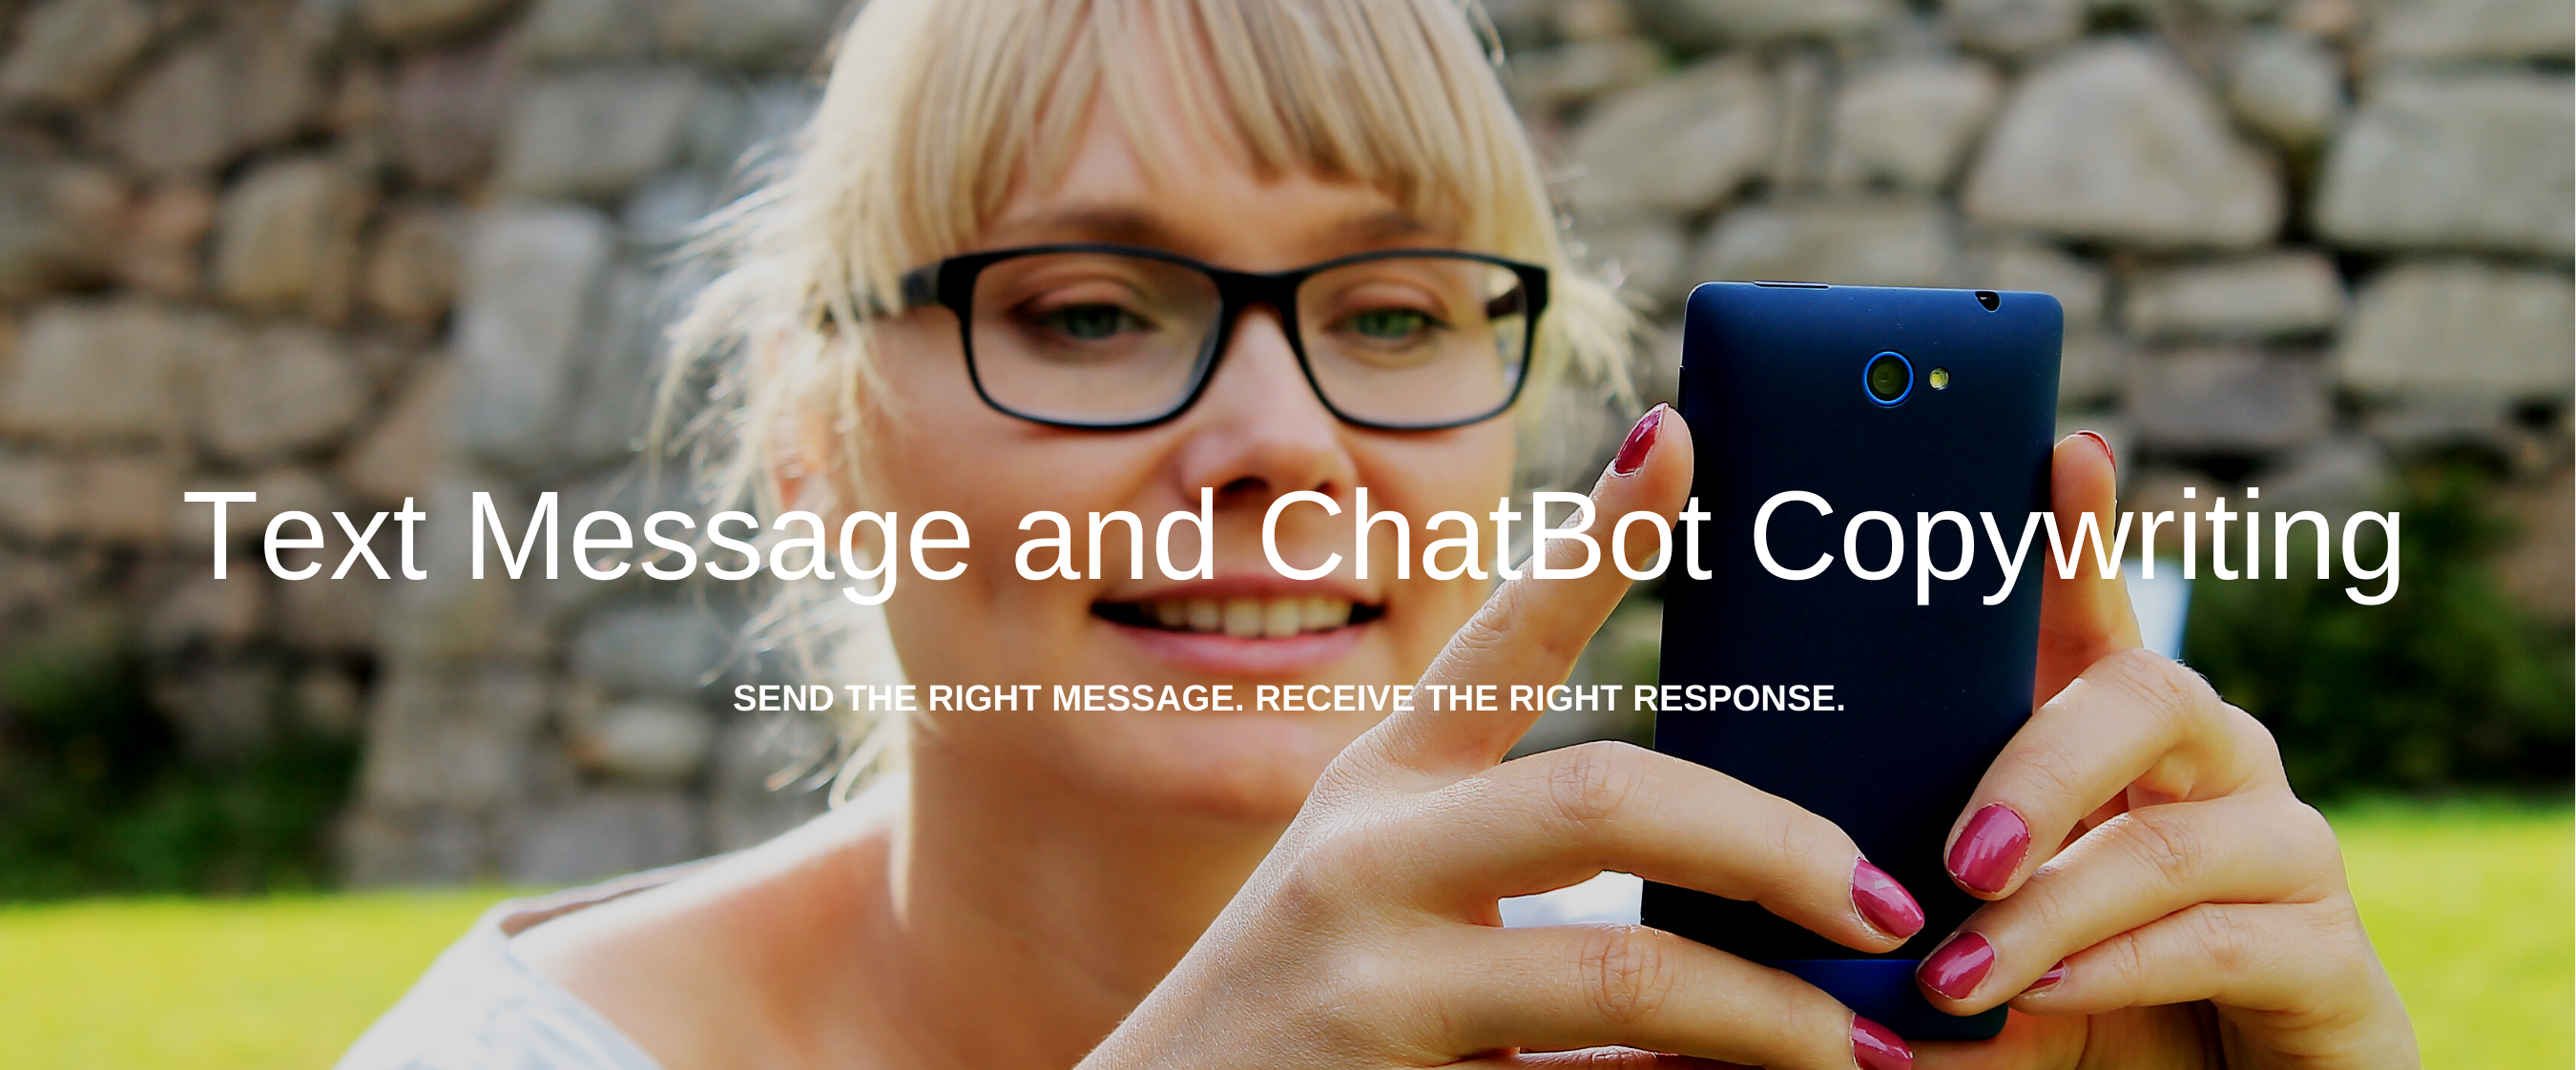 Text Message and Chat Bot Copywriting